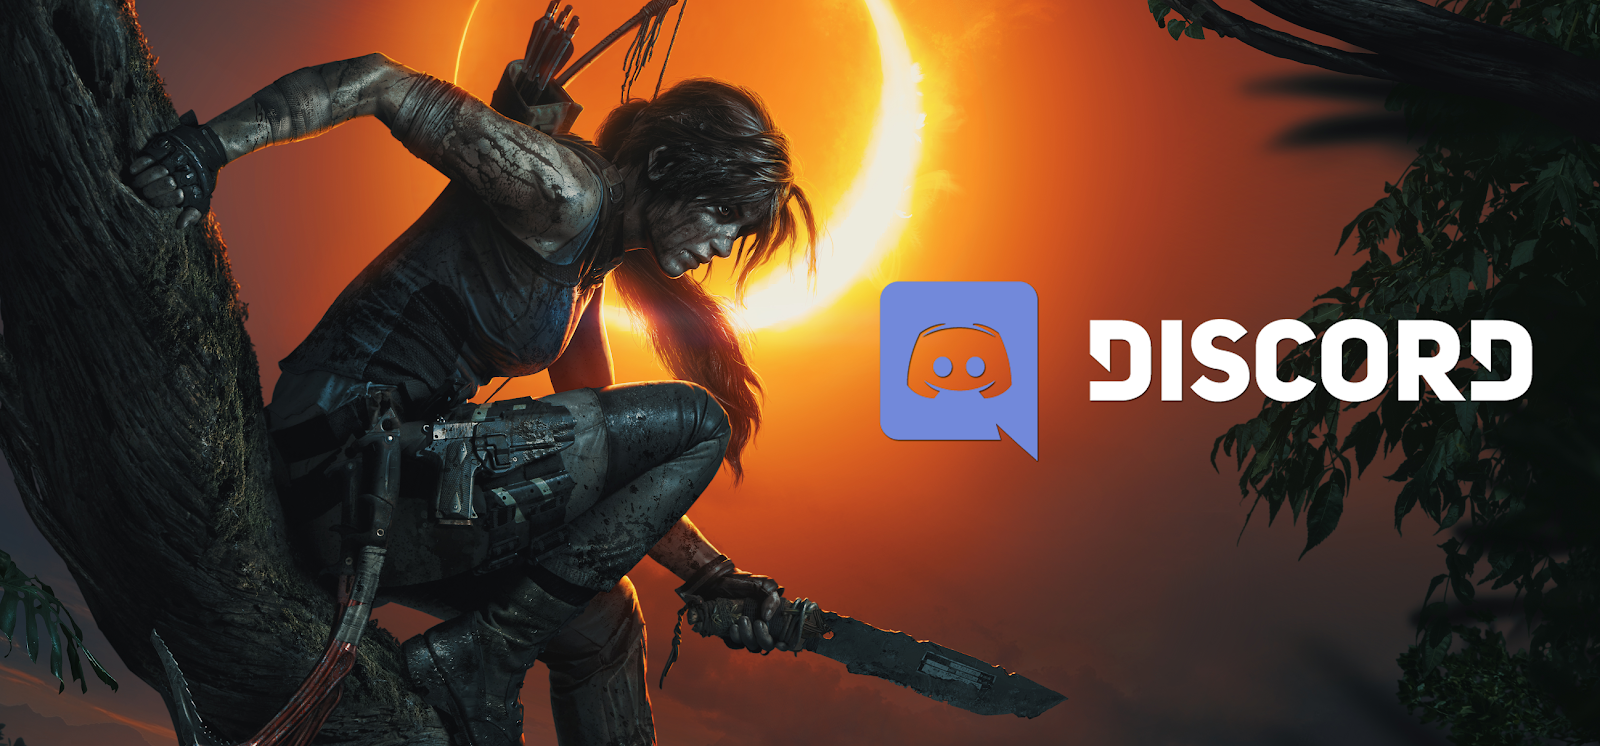 Tomb Raider opens up New Discord Server